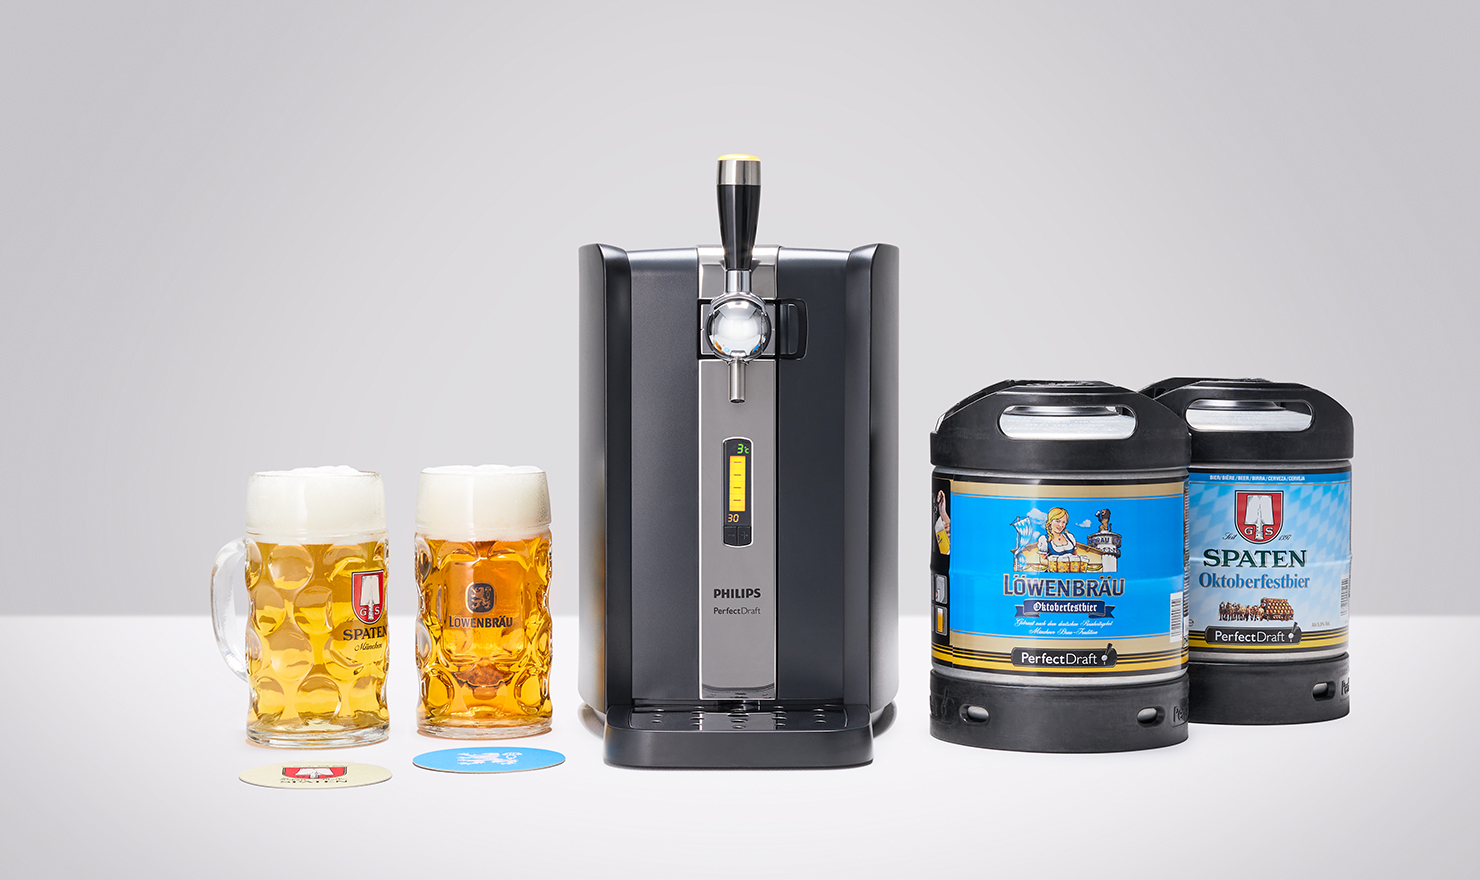 PerfectDraft's Oktoberfest core bundle